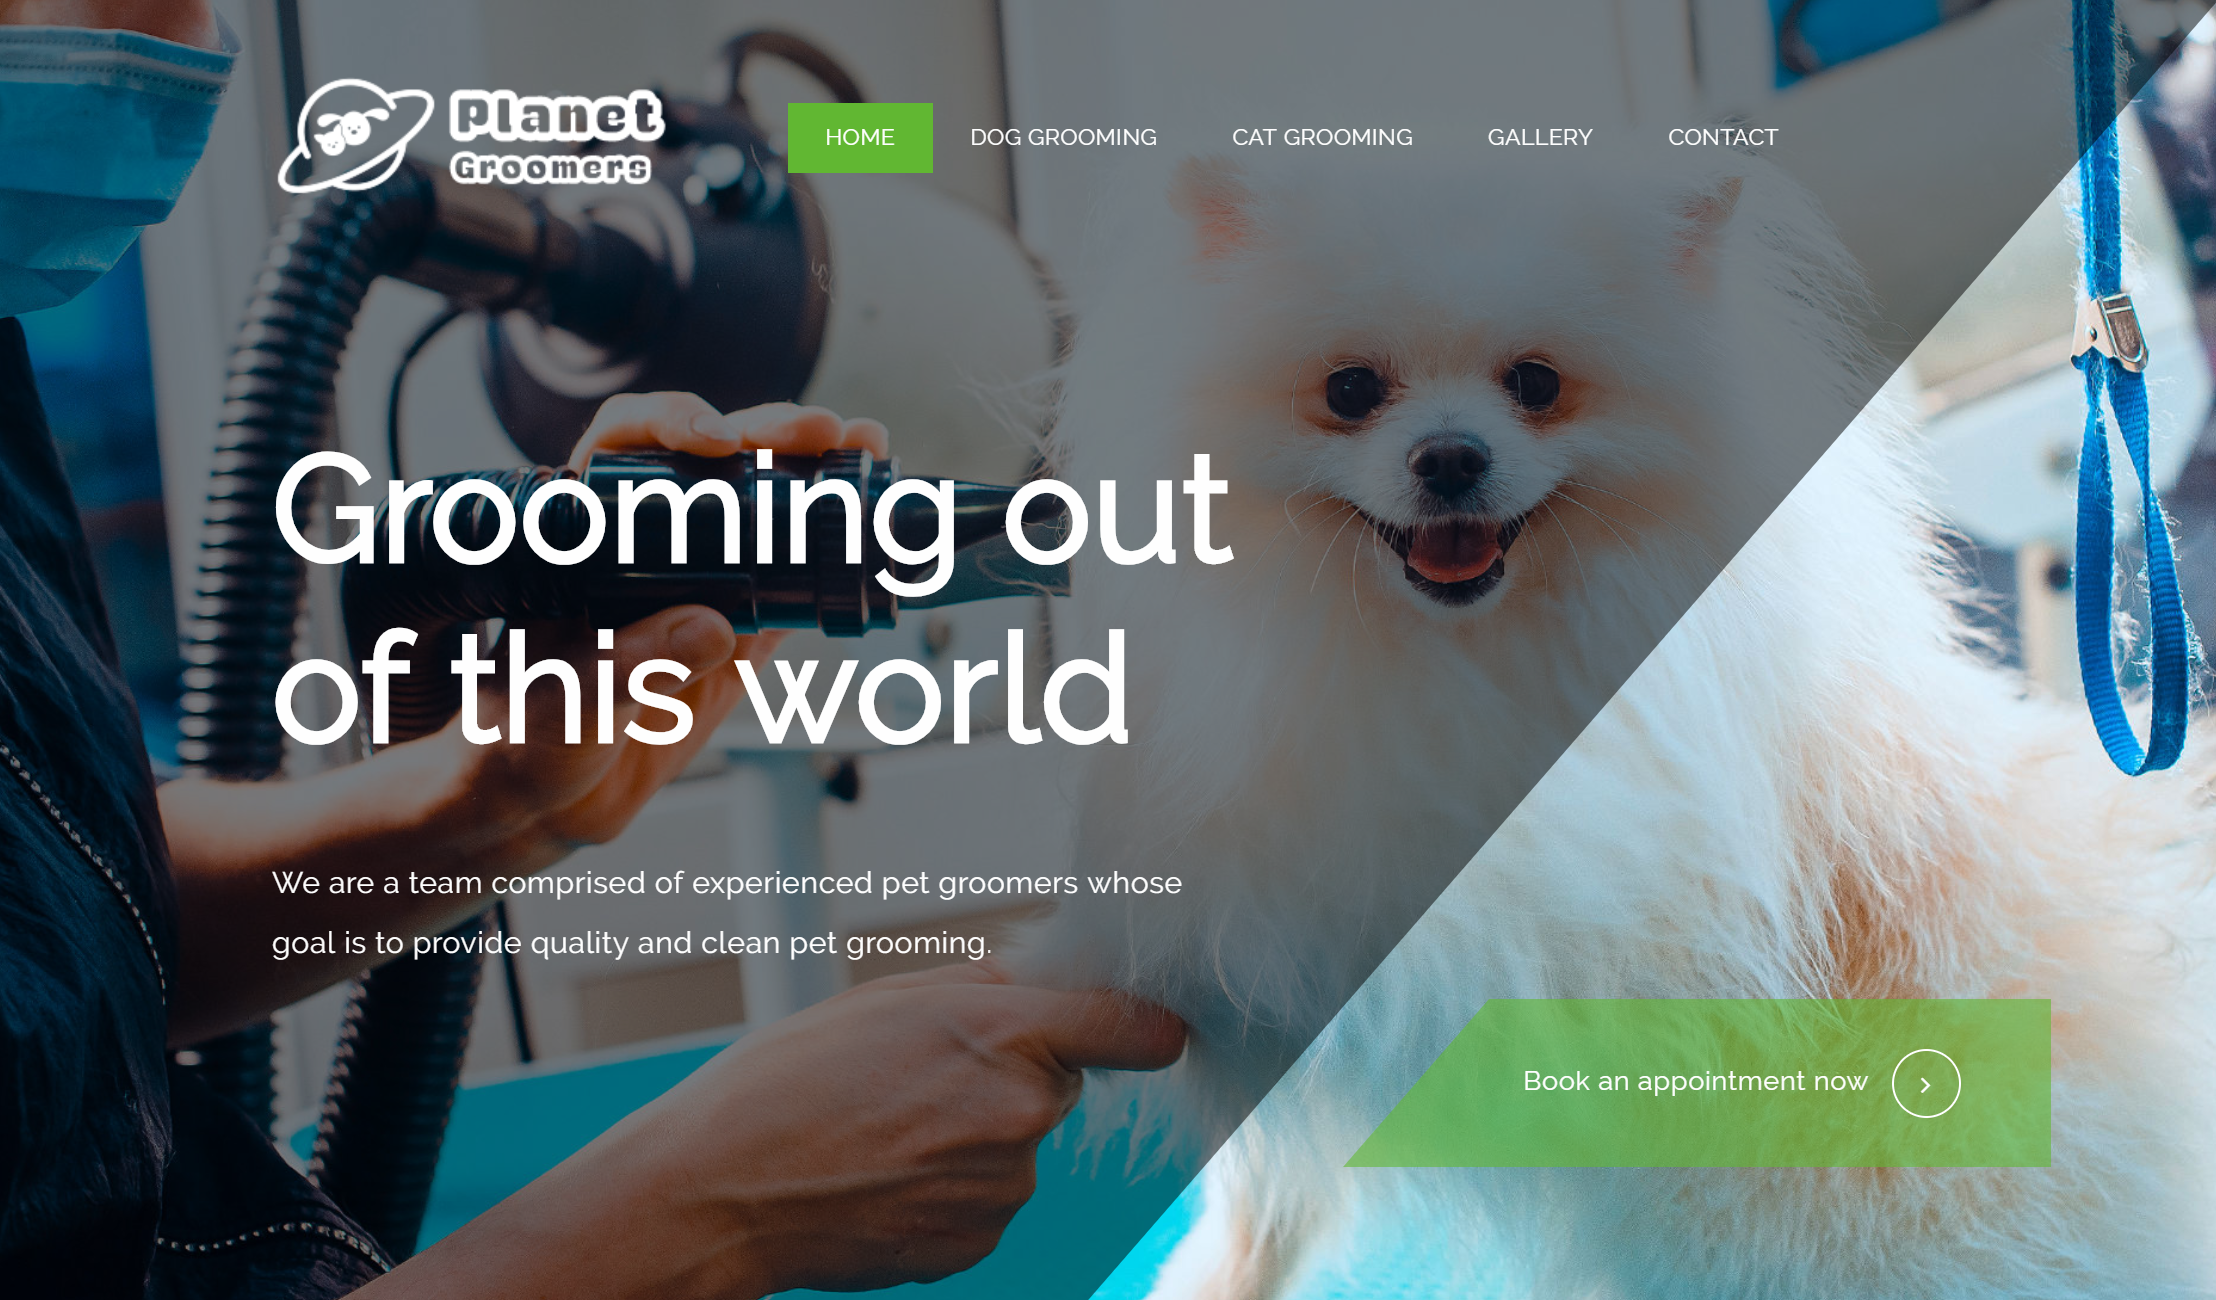 Visit Planet Groomers